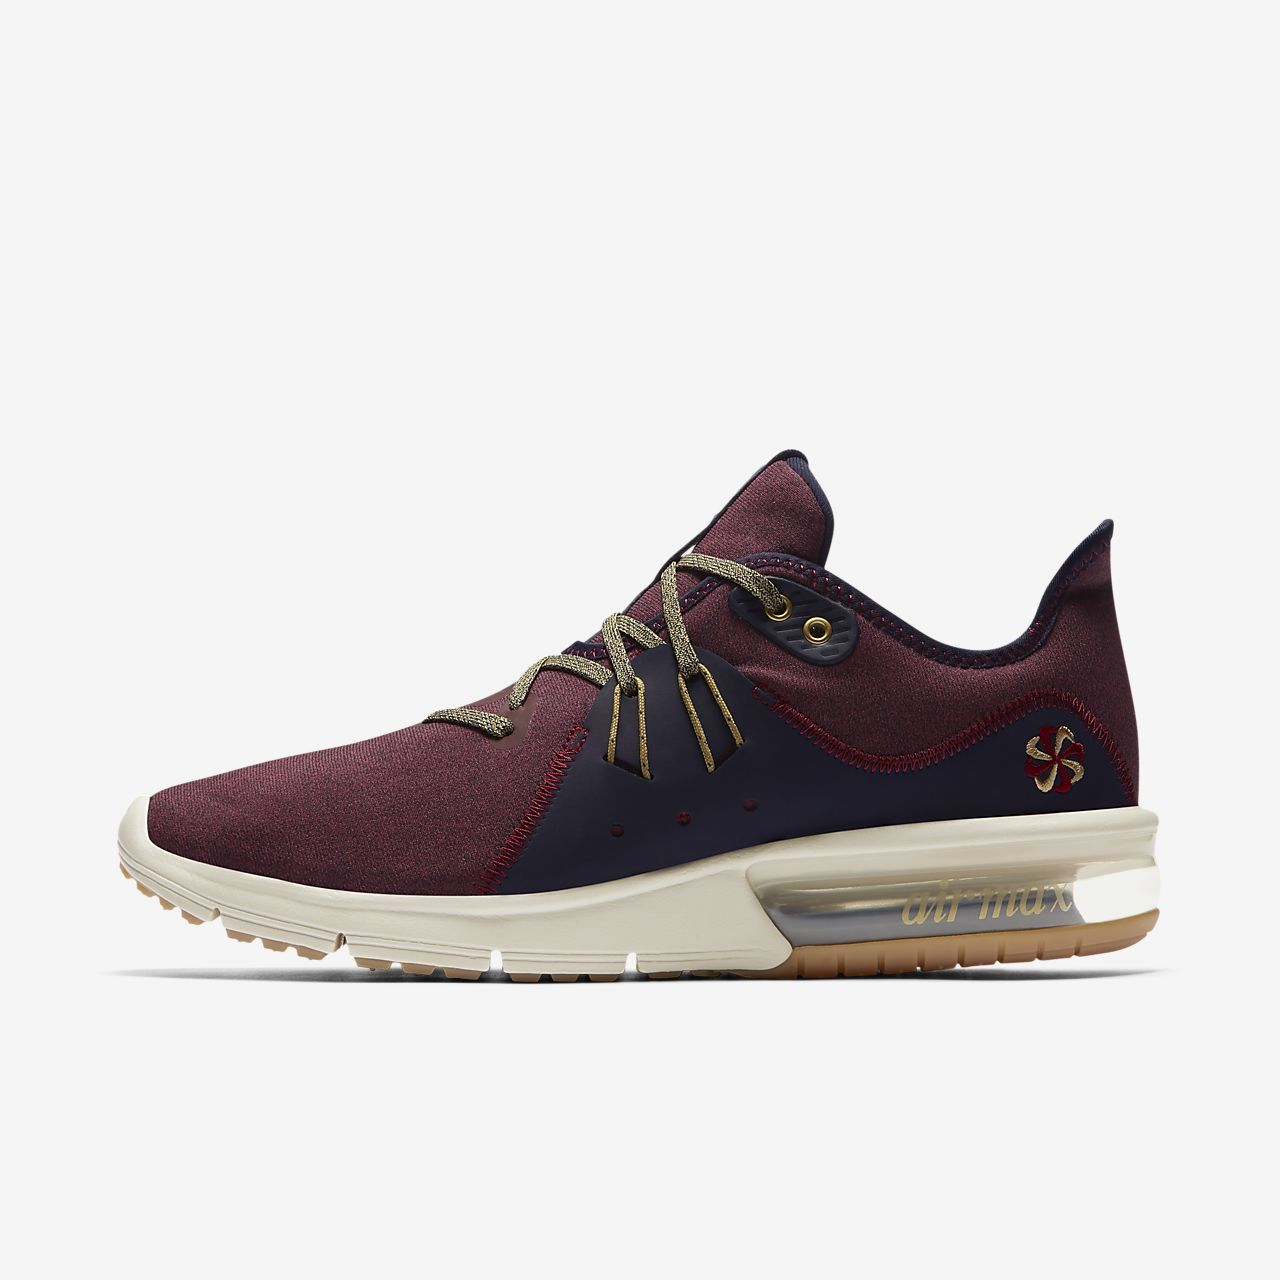 in stock usa cheap sale price reduced Nike Air Max Sequent 3 Premium VST Men's Running Shoe in ...